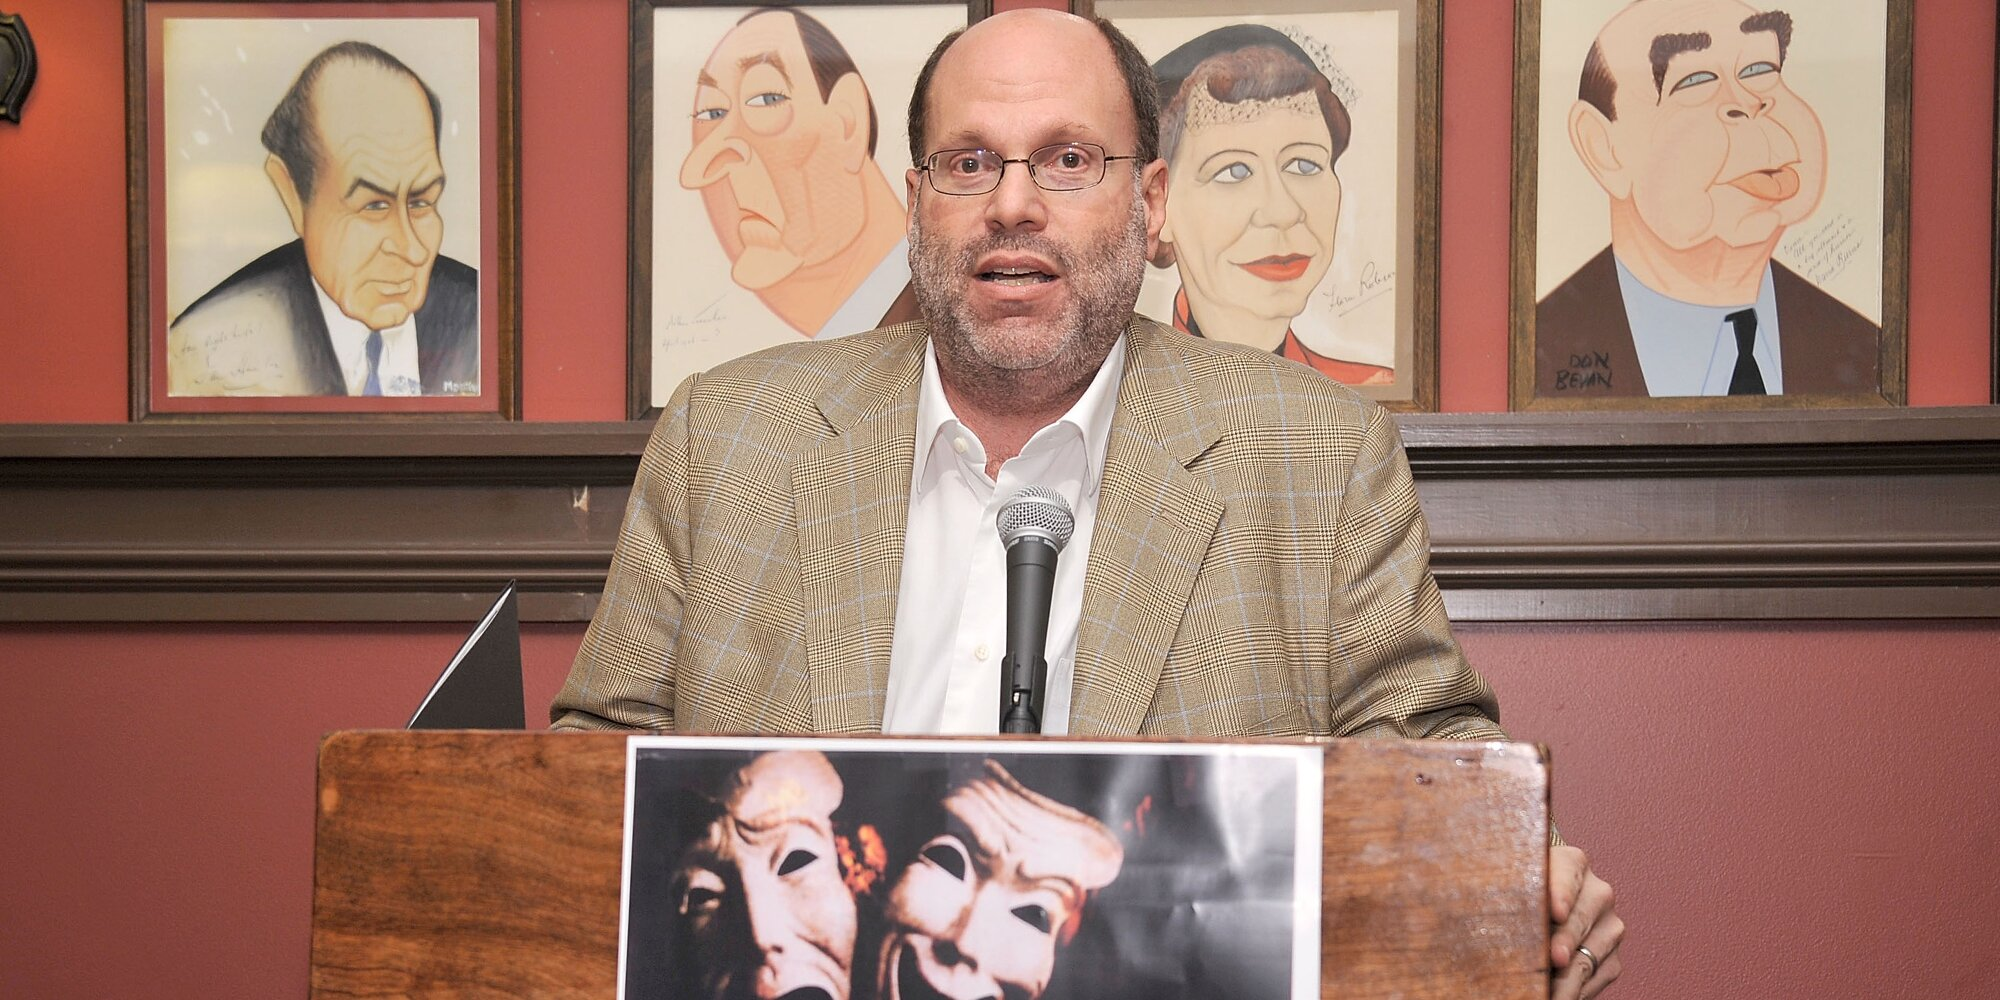 Producer Scott Rudin will 'step back' from Broadway shows amid allegations of abusive behavior